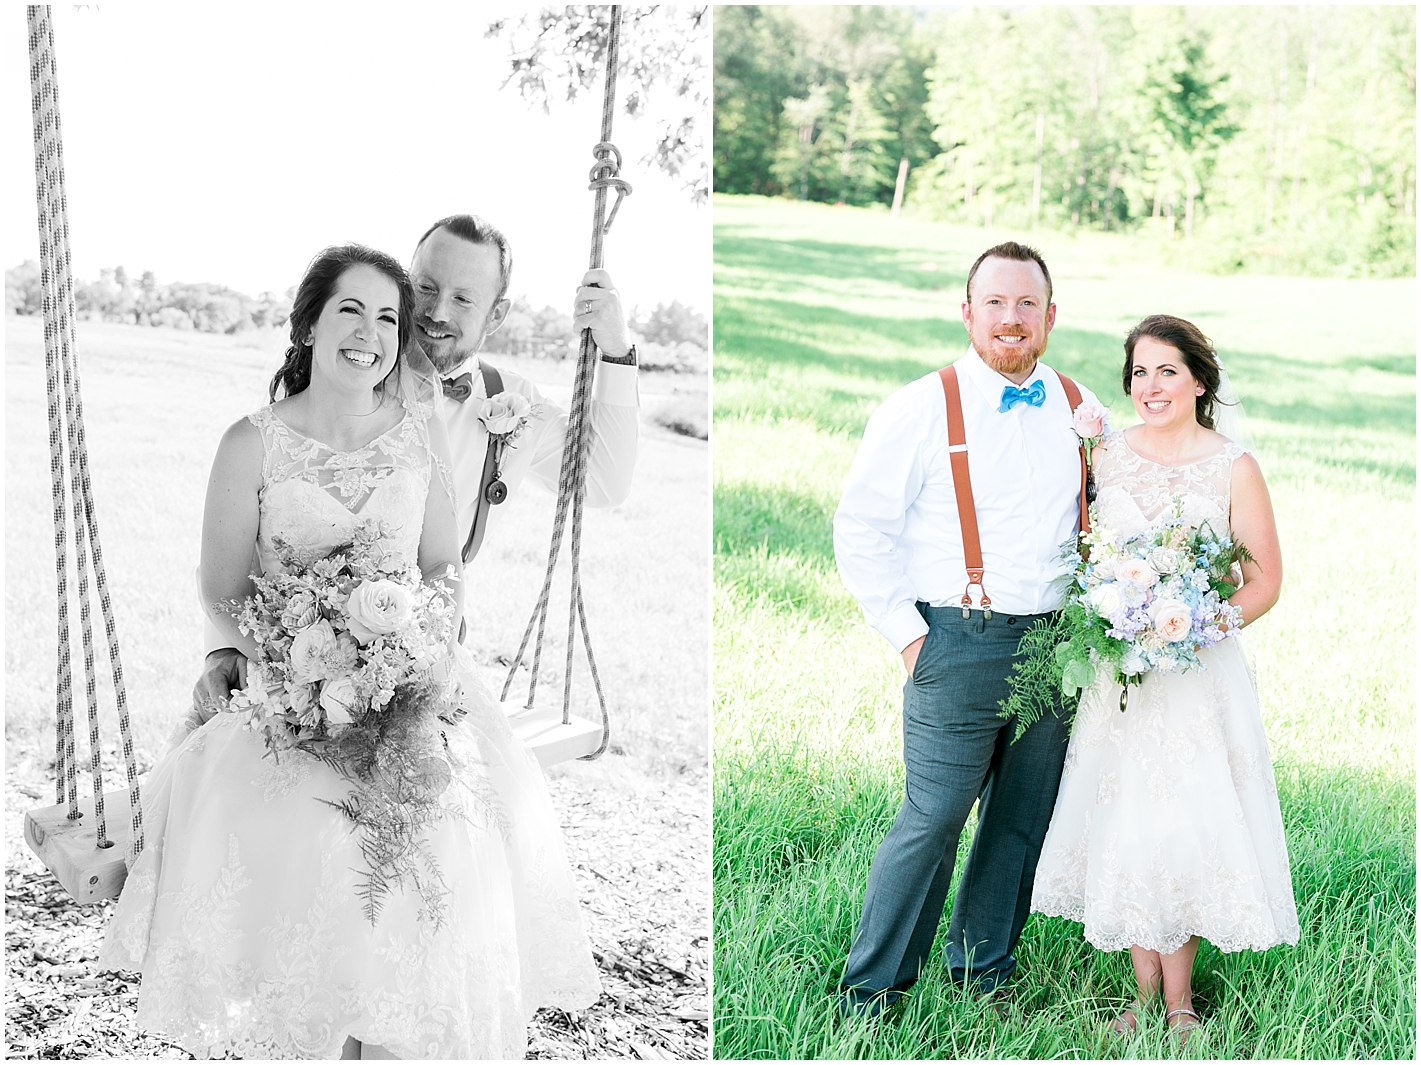 Alice and Wonderland Themed Wedding Portraits by Alyssa Parker Photography